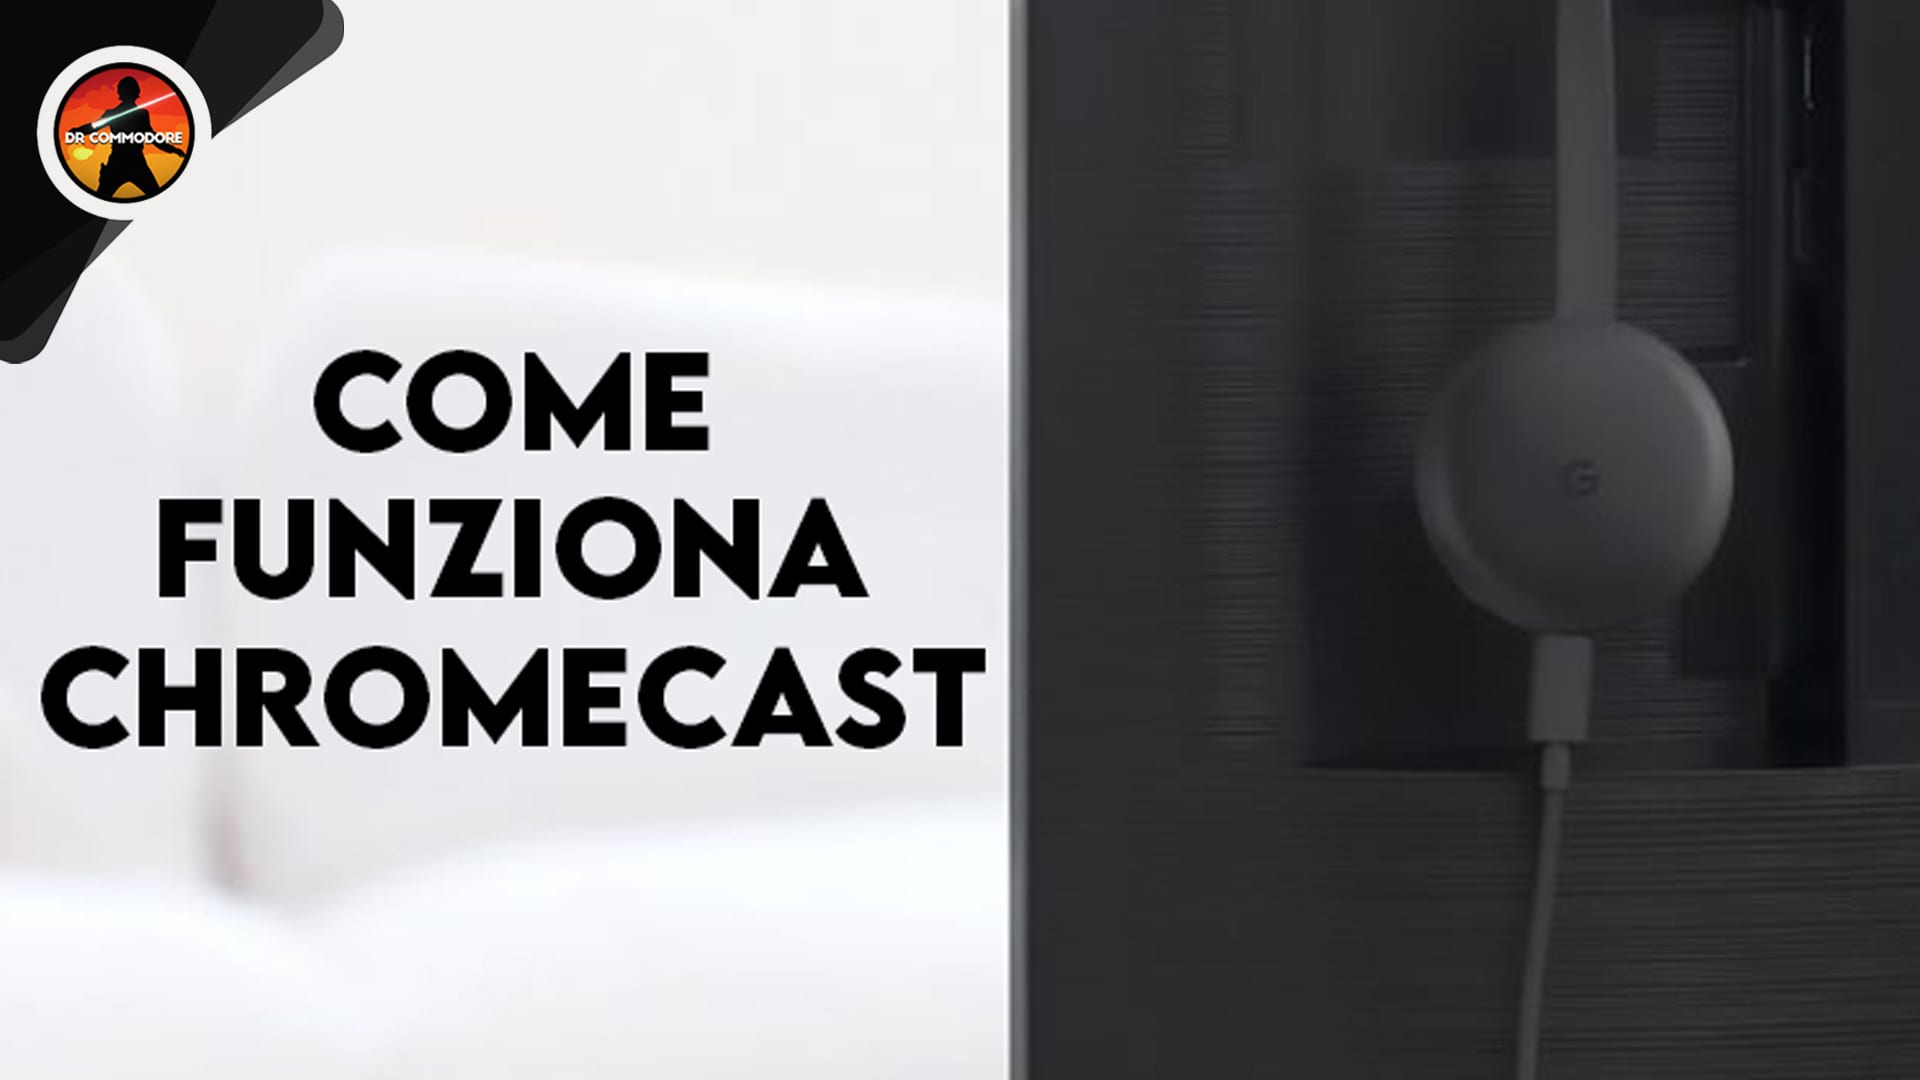 chromecast header